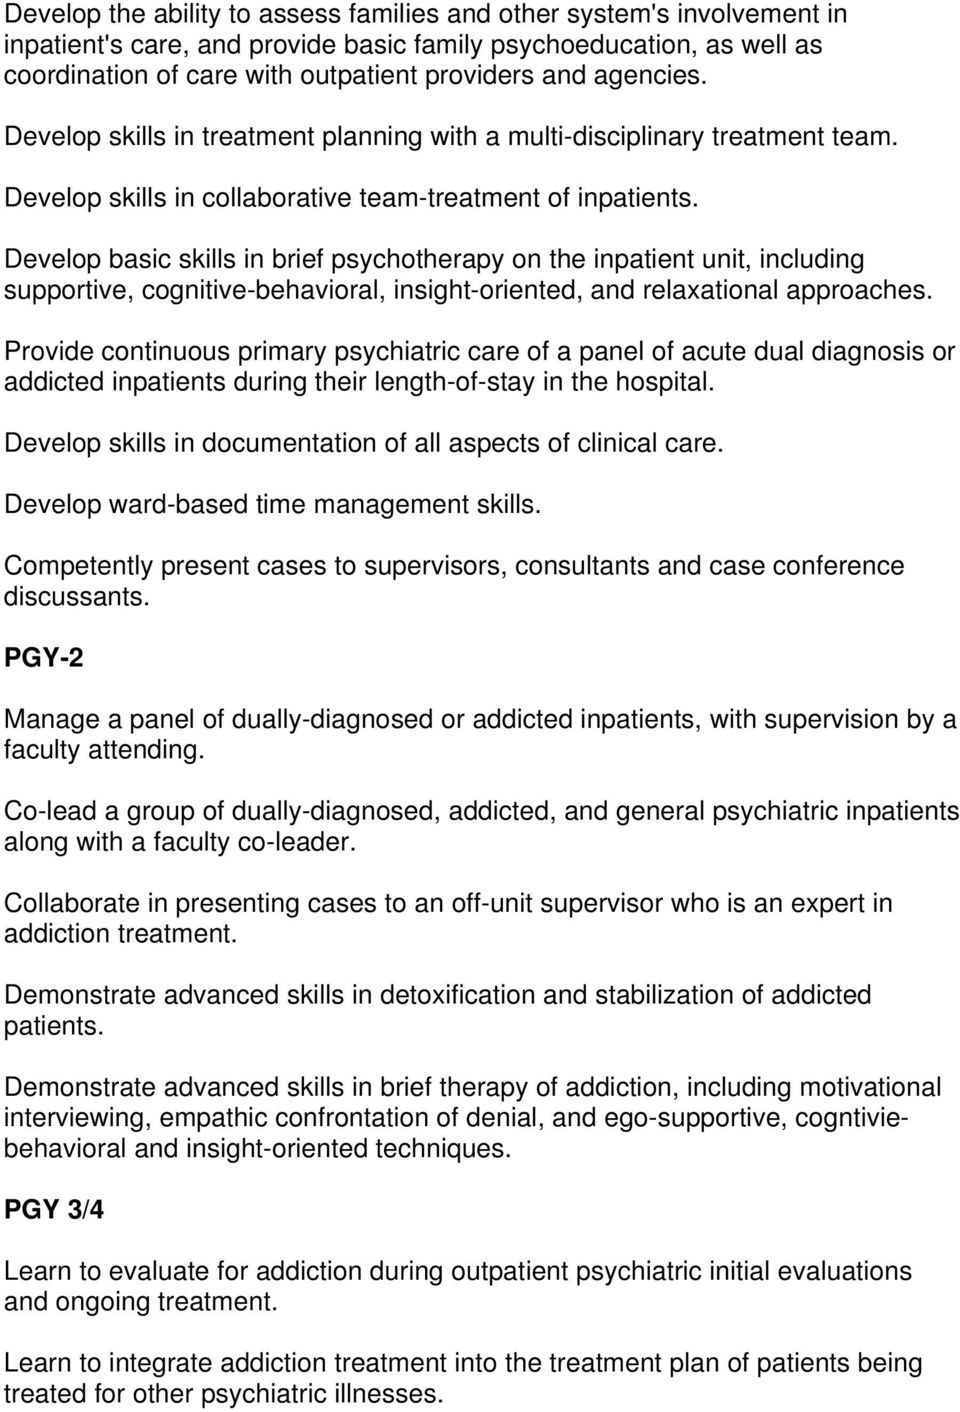 Develop basic skills in brief psychotherapy on the inpatient unit, including supportive, cognitive-behavioral, insight-oriented, and relaxational approaches.